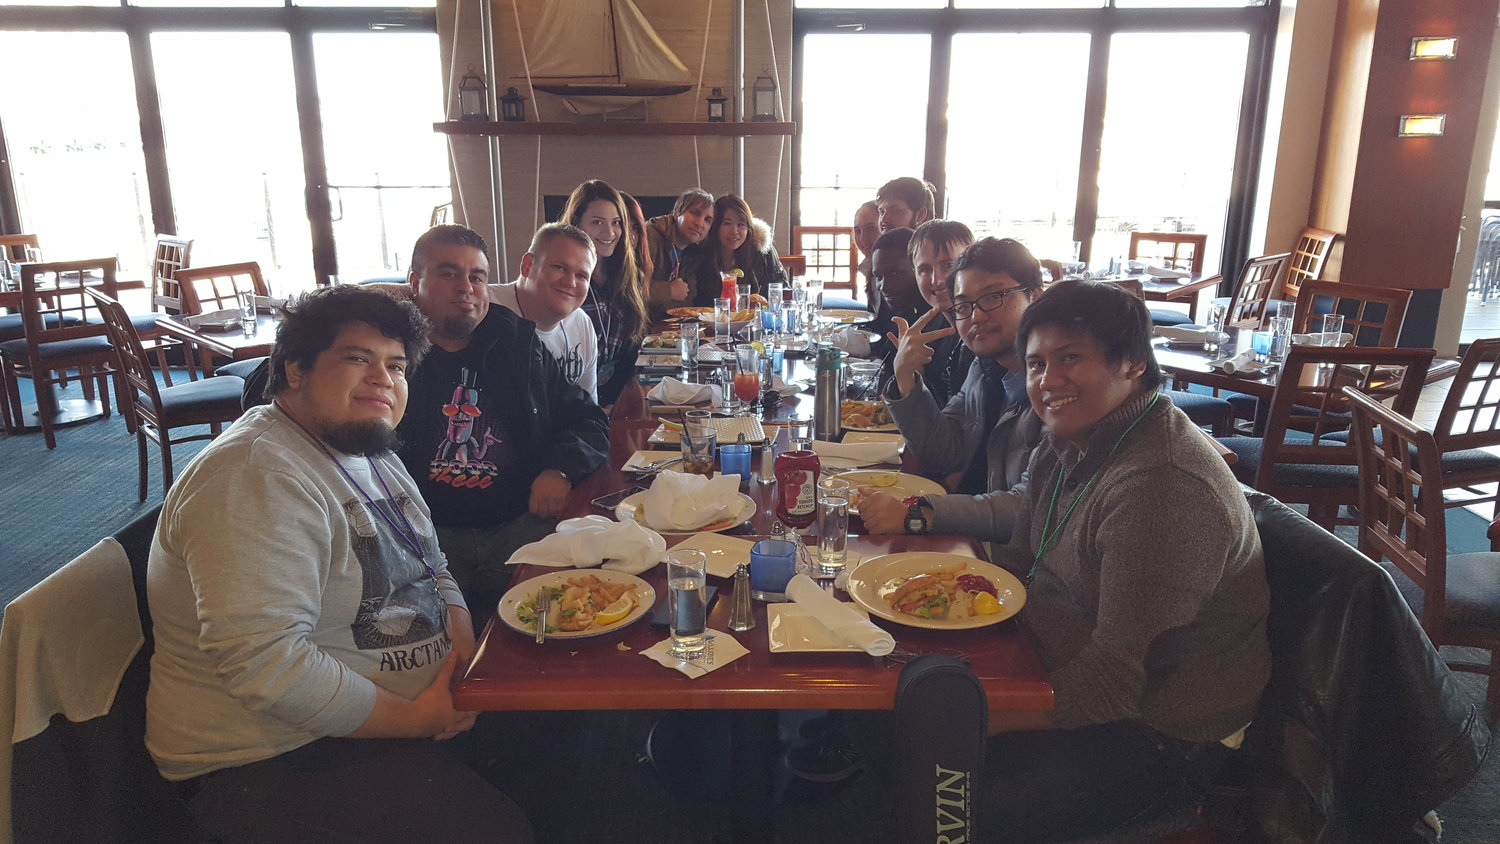 From L to R (BlackearacheXD, Project Genesis, Yours Truly, Medllix, Medllix's friend, Steven Morris, Steven's wife, Bassoonify's wife, Bassoonify, Subversiveasset, Dannymusic, Legendav, and Xnarky).